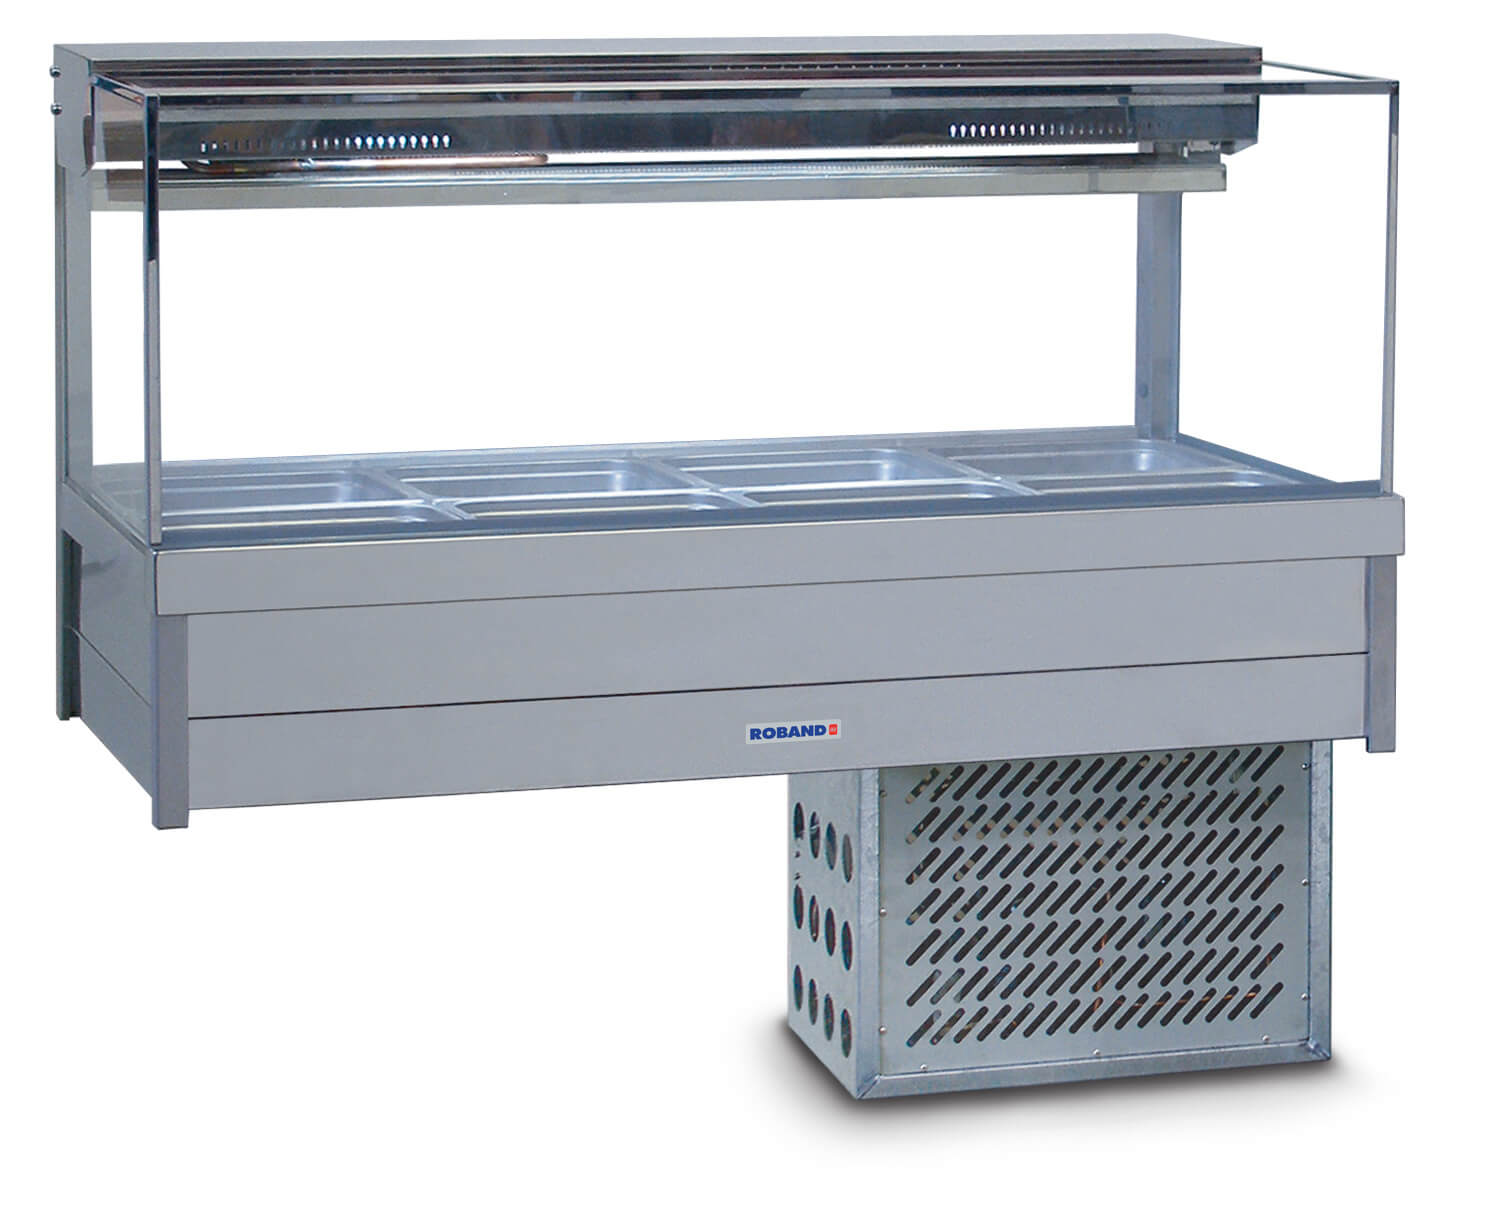 Roband Square Glass Refrigerated Display Bar – Piped and Foamed only (no motor), 8 pans